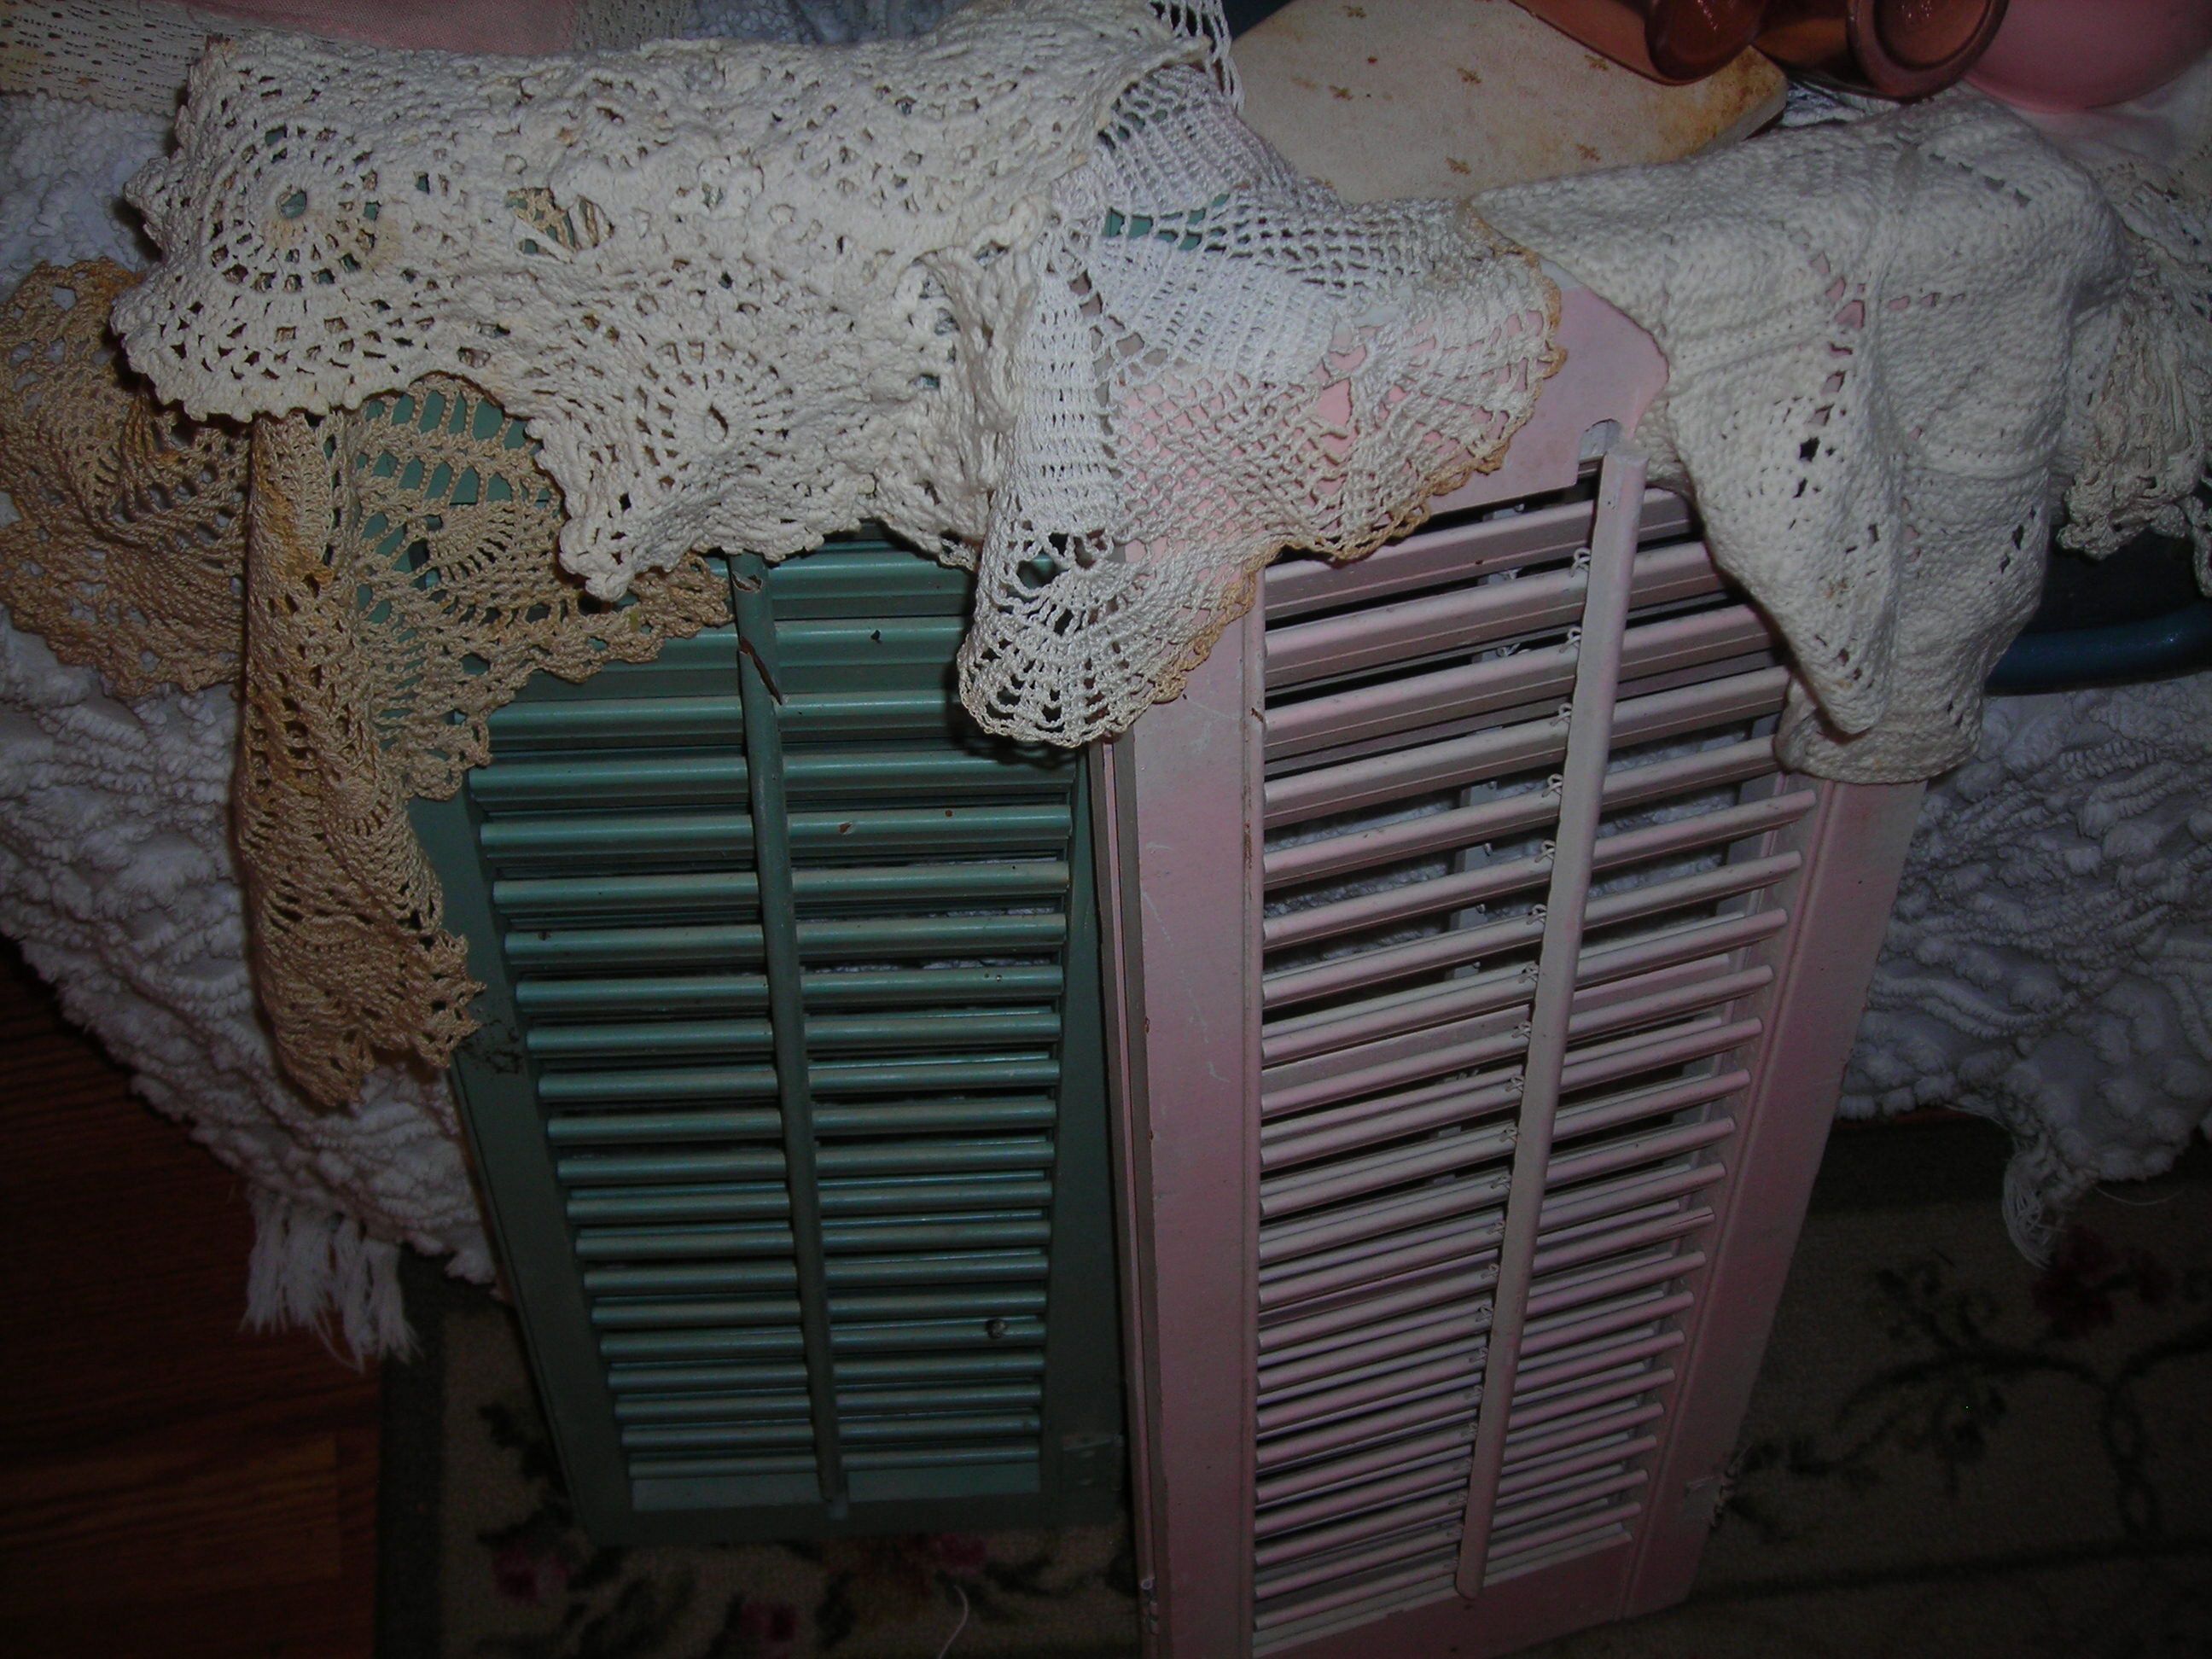 sweet old shutters, already painted my fave colors!